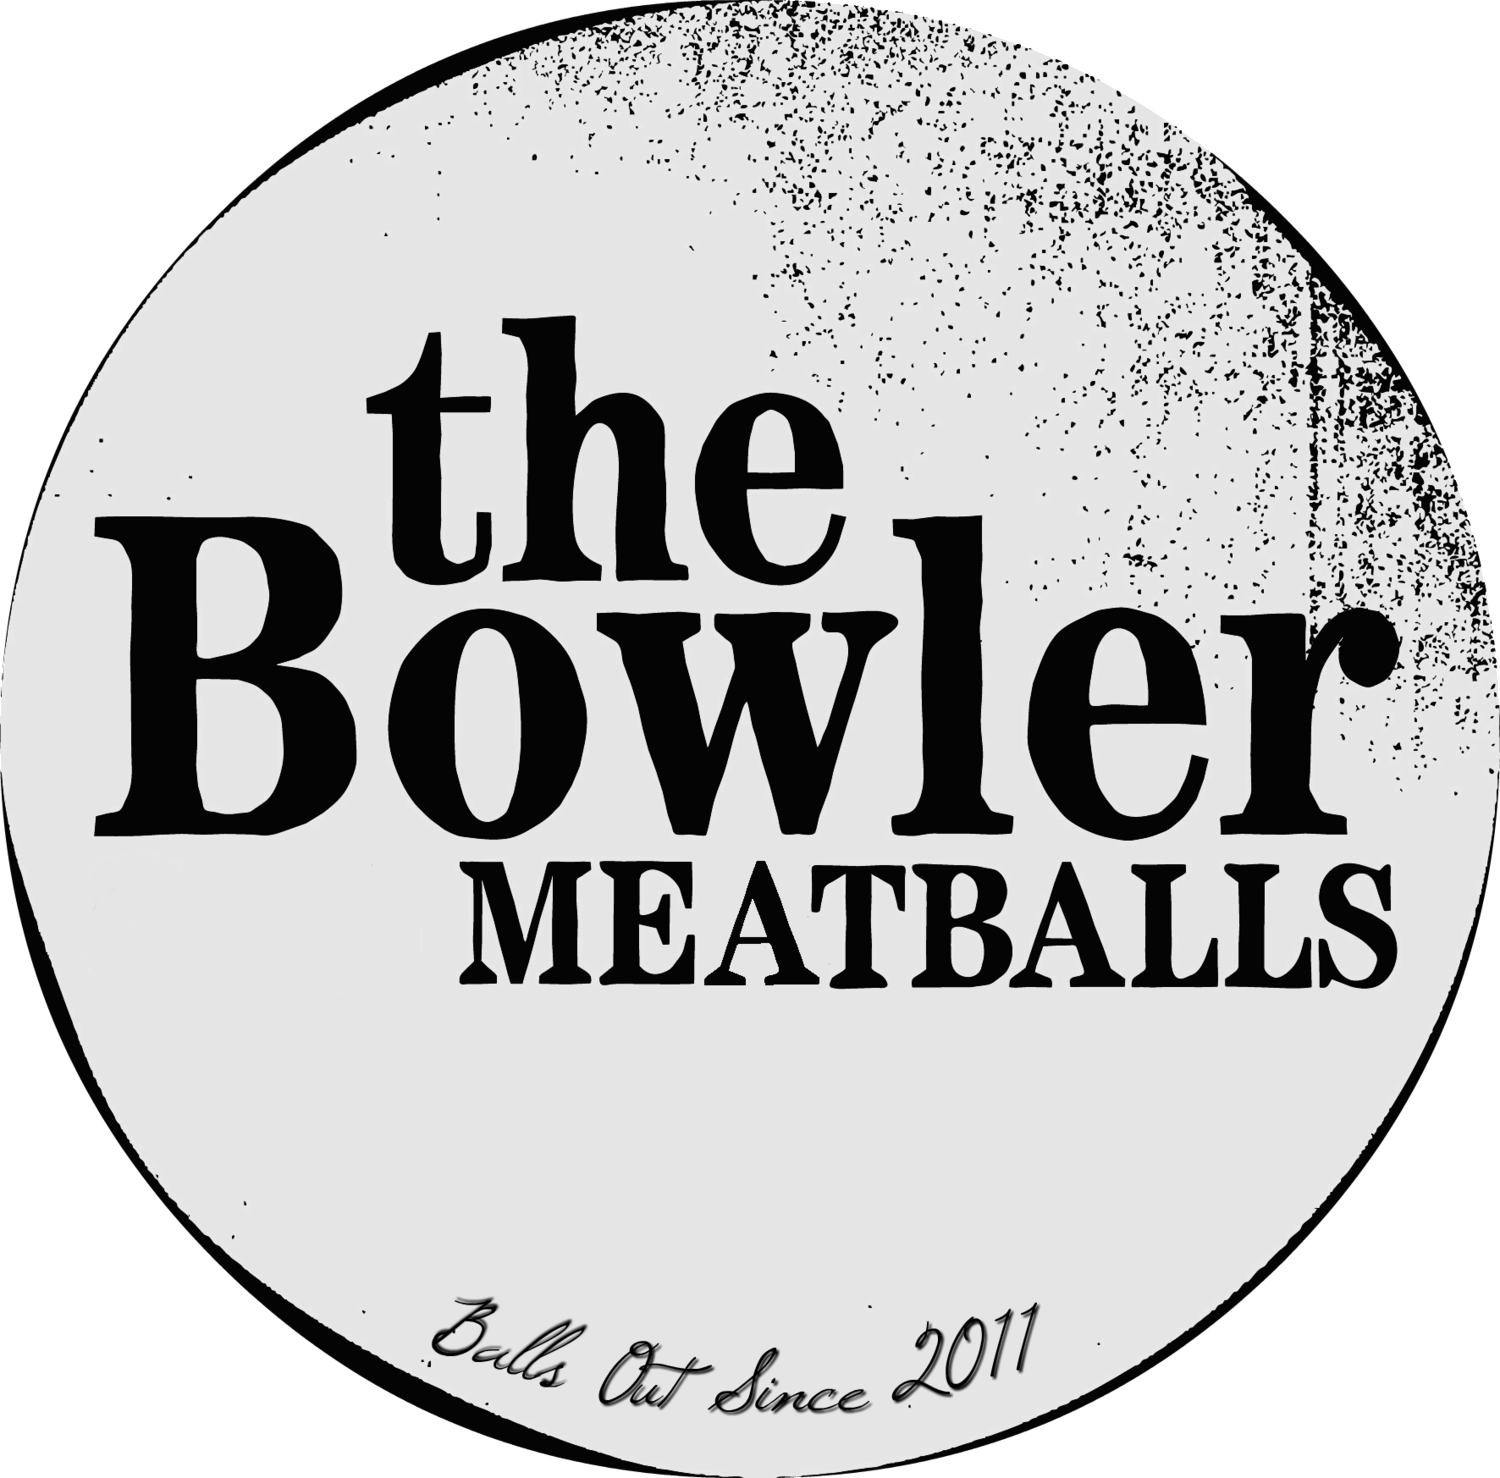 The Bowler Meatballs